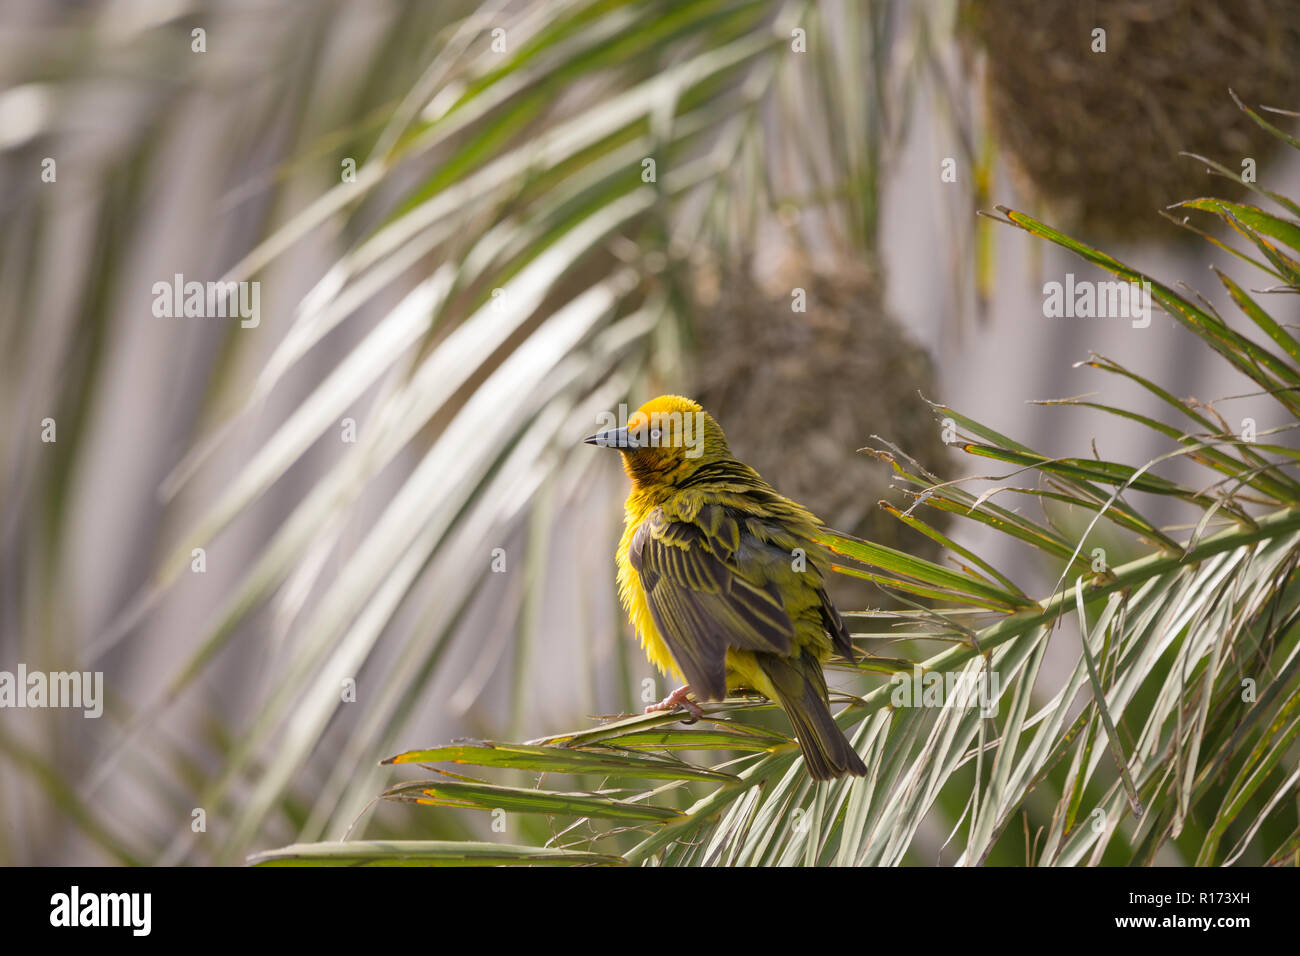 Yellow Cape Weaver bird (Ploceus capensis) perches on a palm frond in front of a woven nest of grass with ruffled feathers and slightly open wings - Stock Image